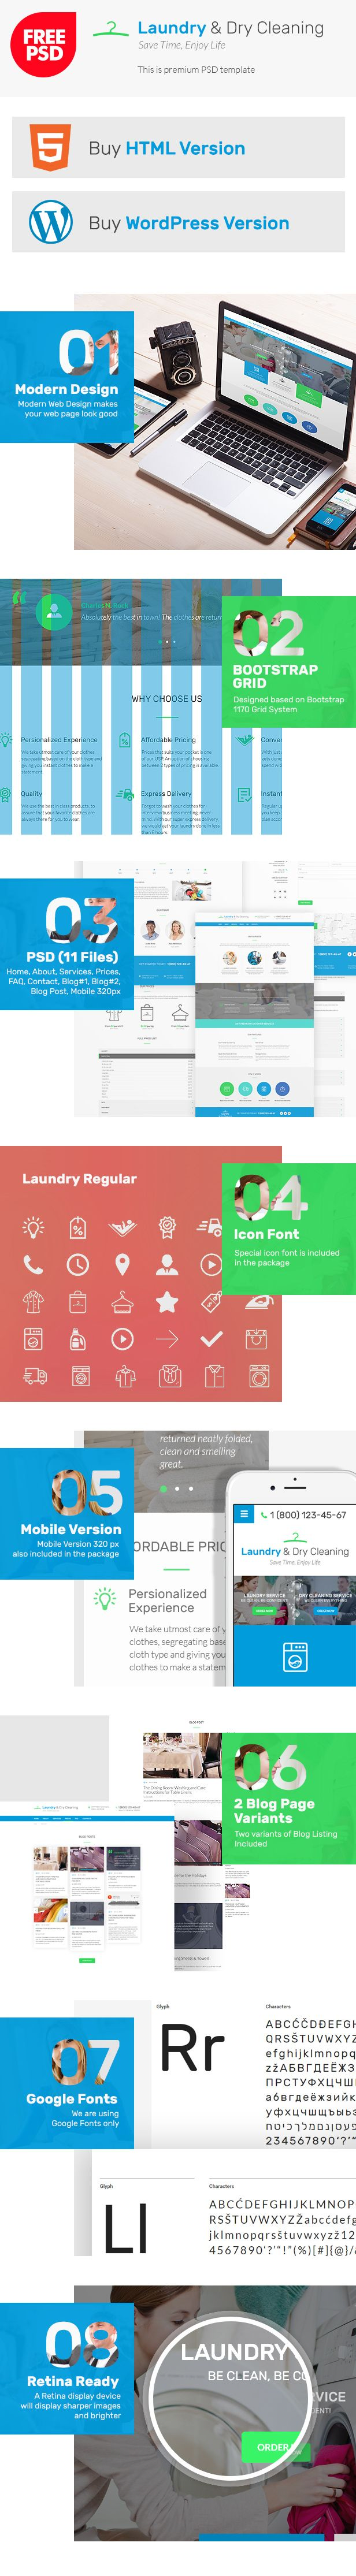 #Free #Laundry Dry #Cleaning PSD #Template